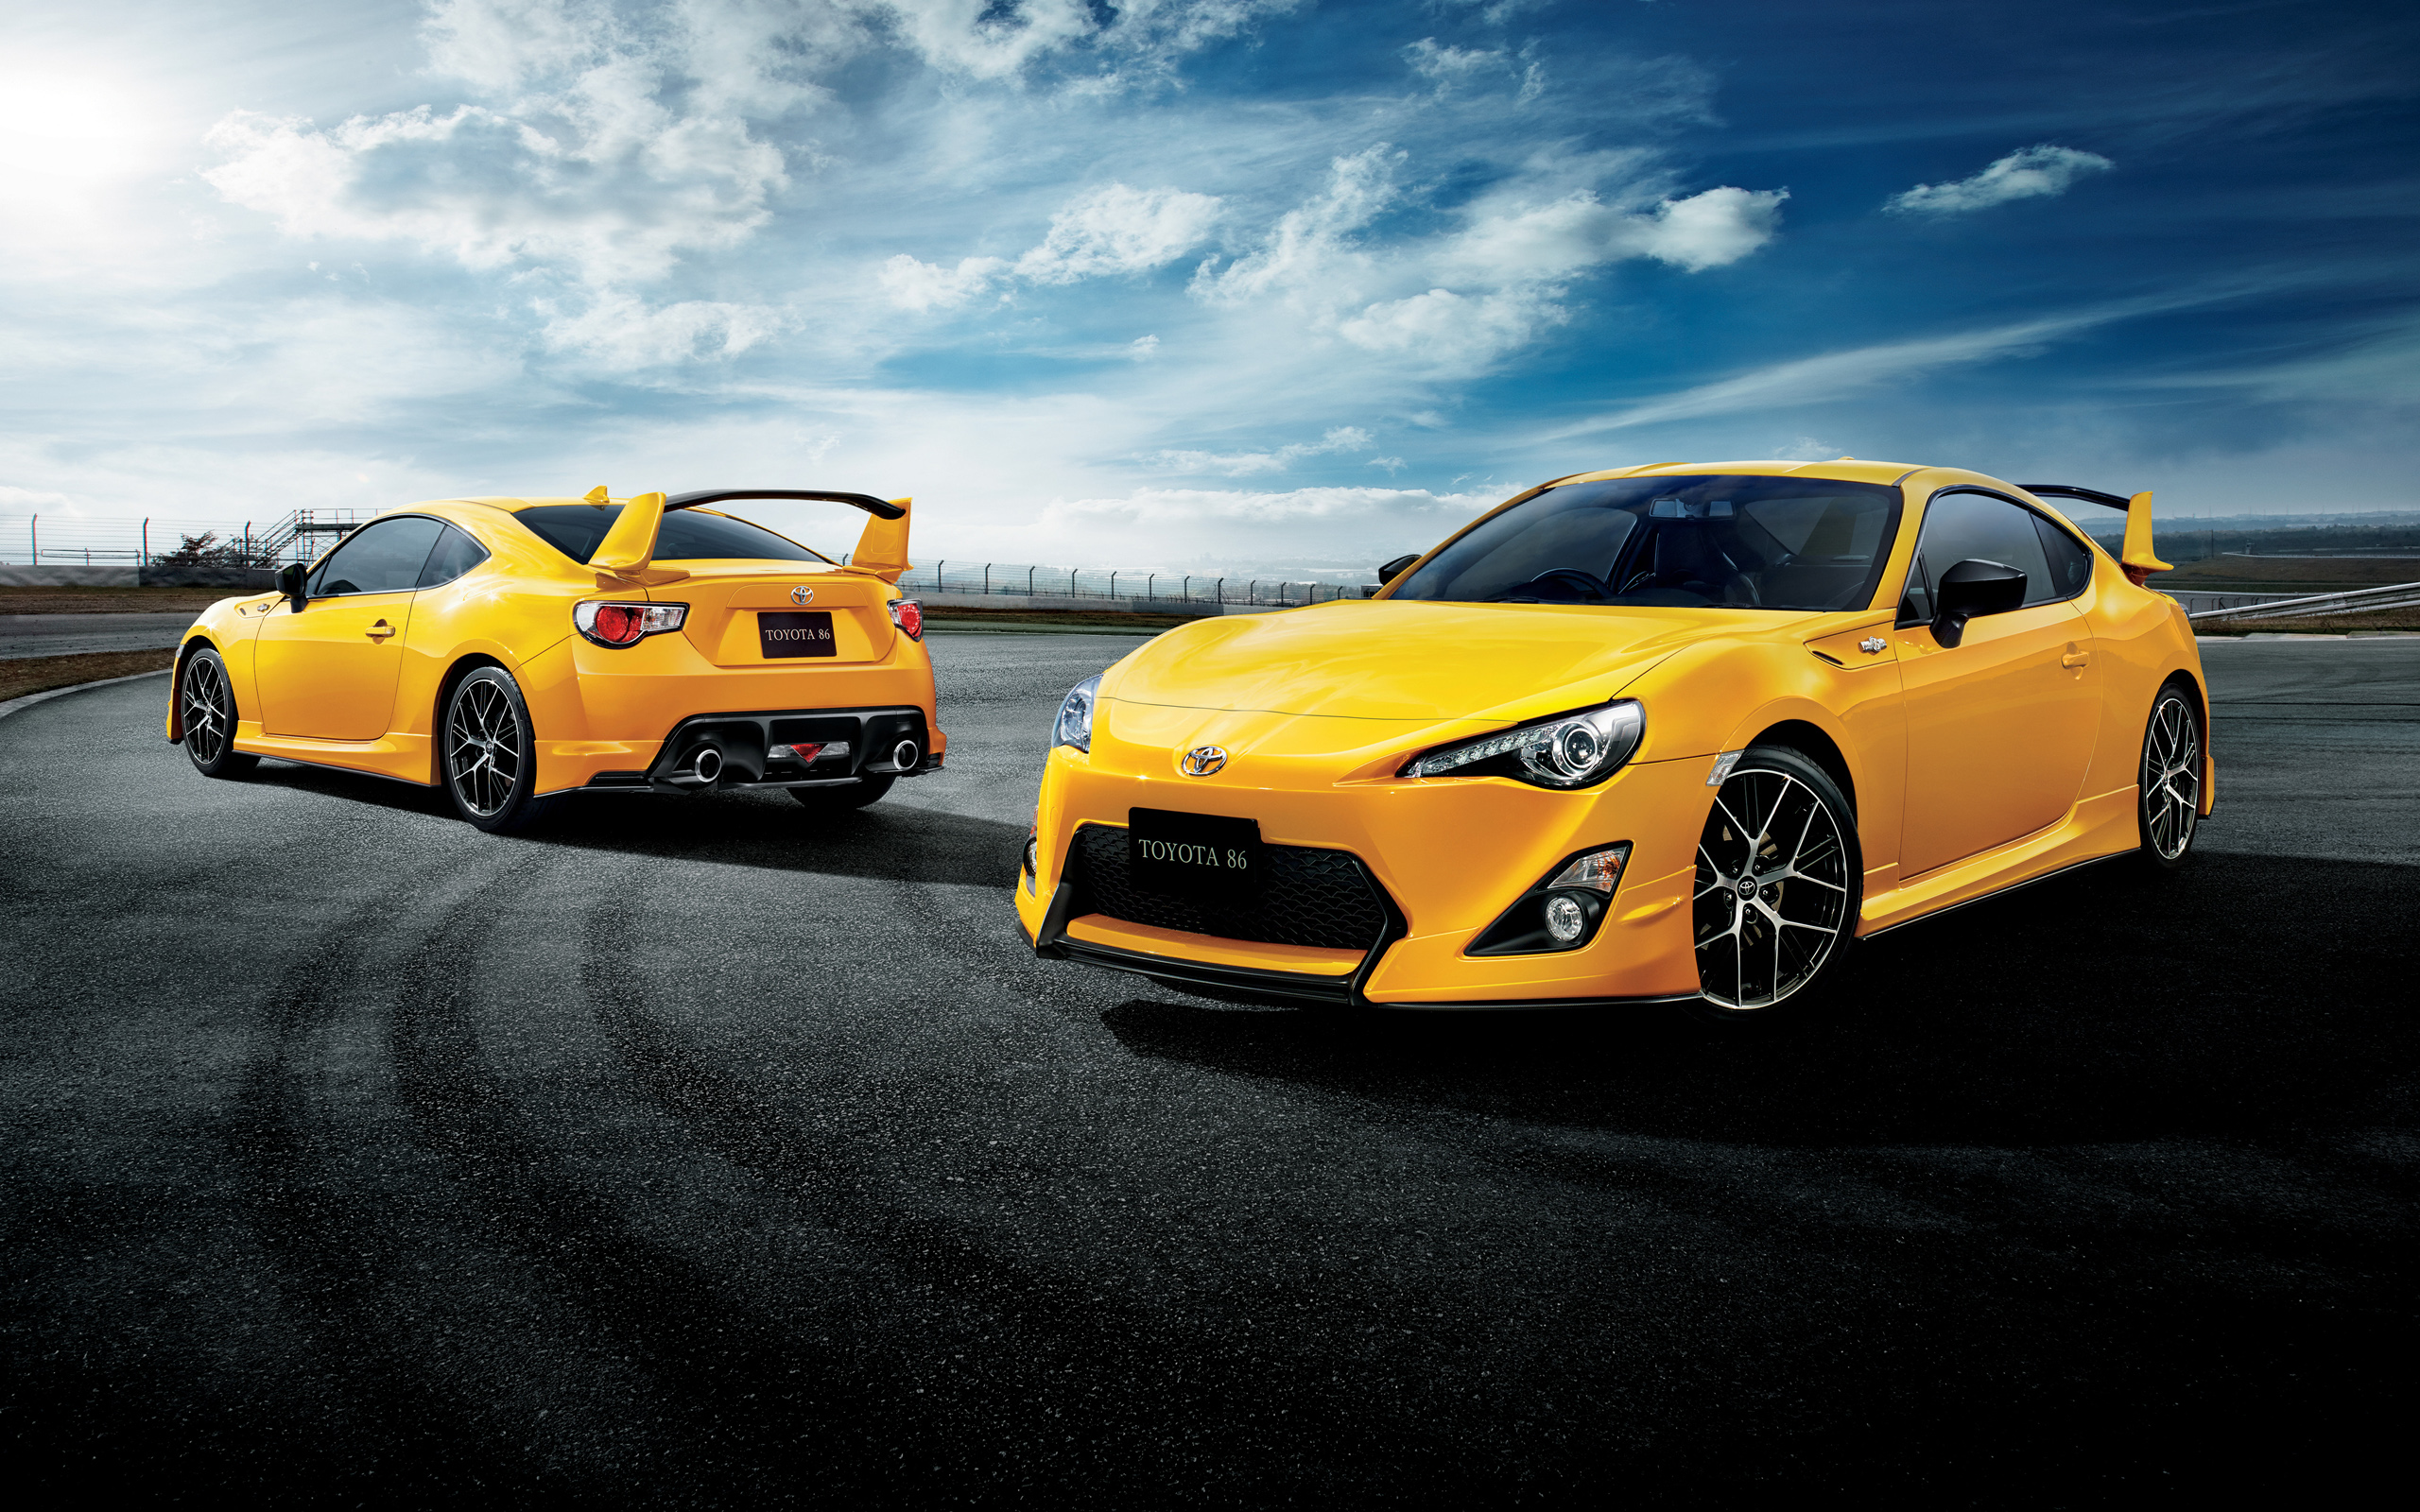 2015 Toyota 86 Gt Wallpaper  Hd Car Wallpapers  Id #5463